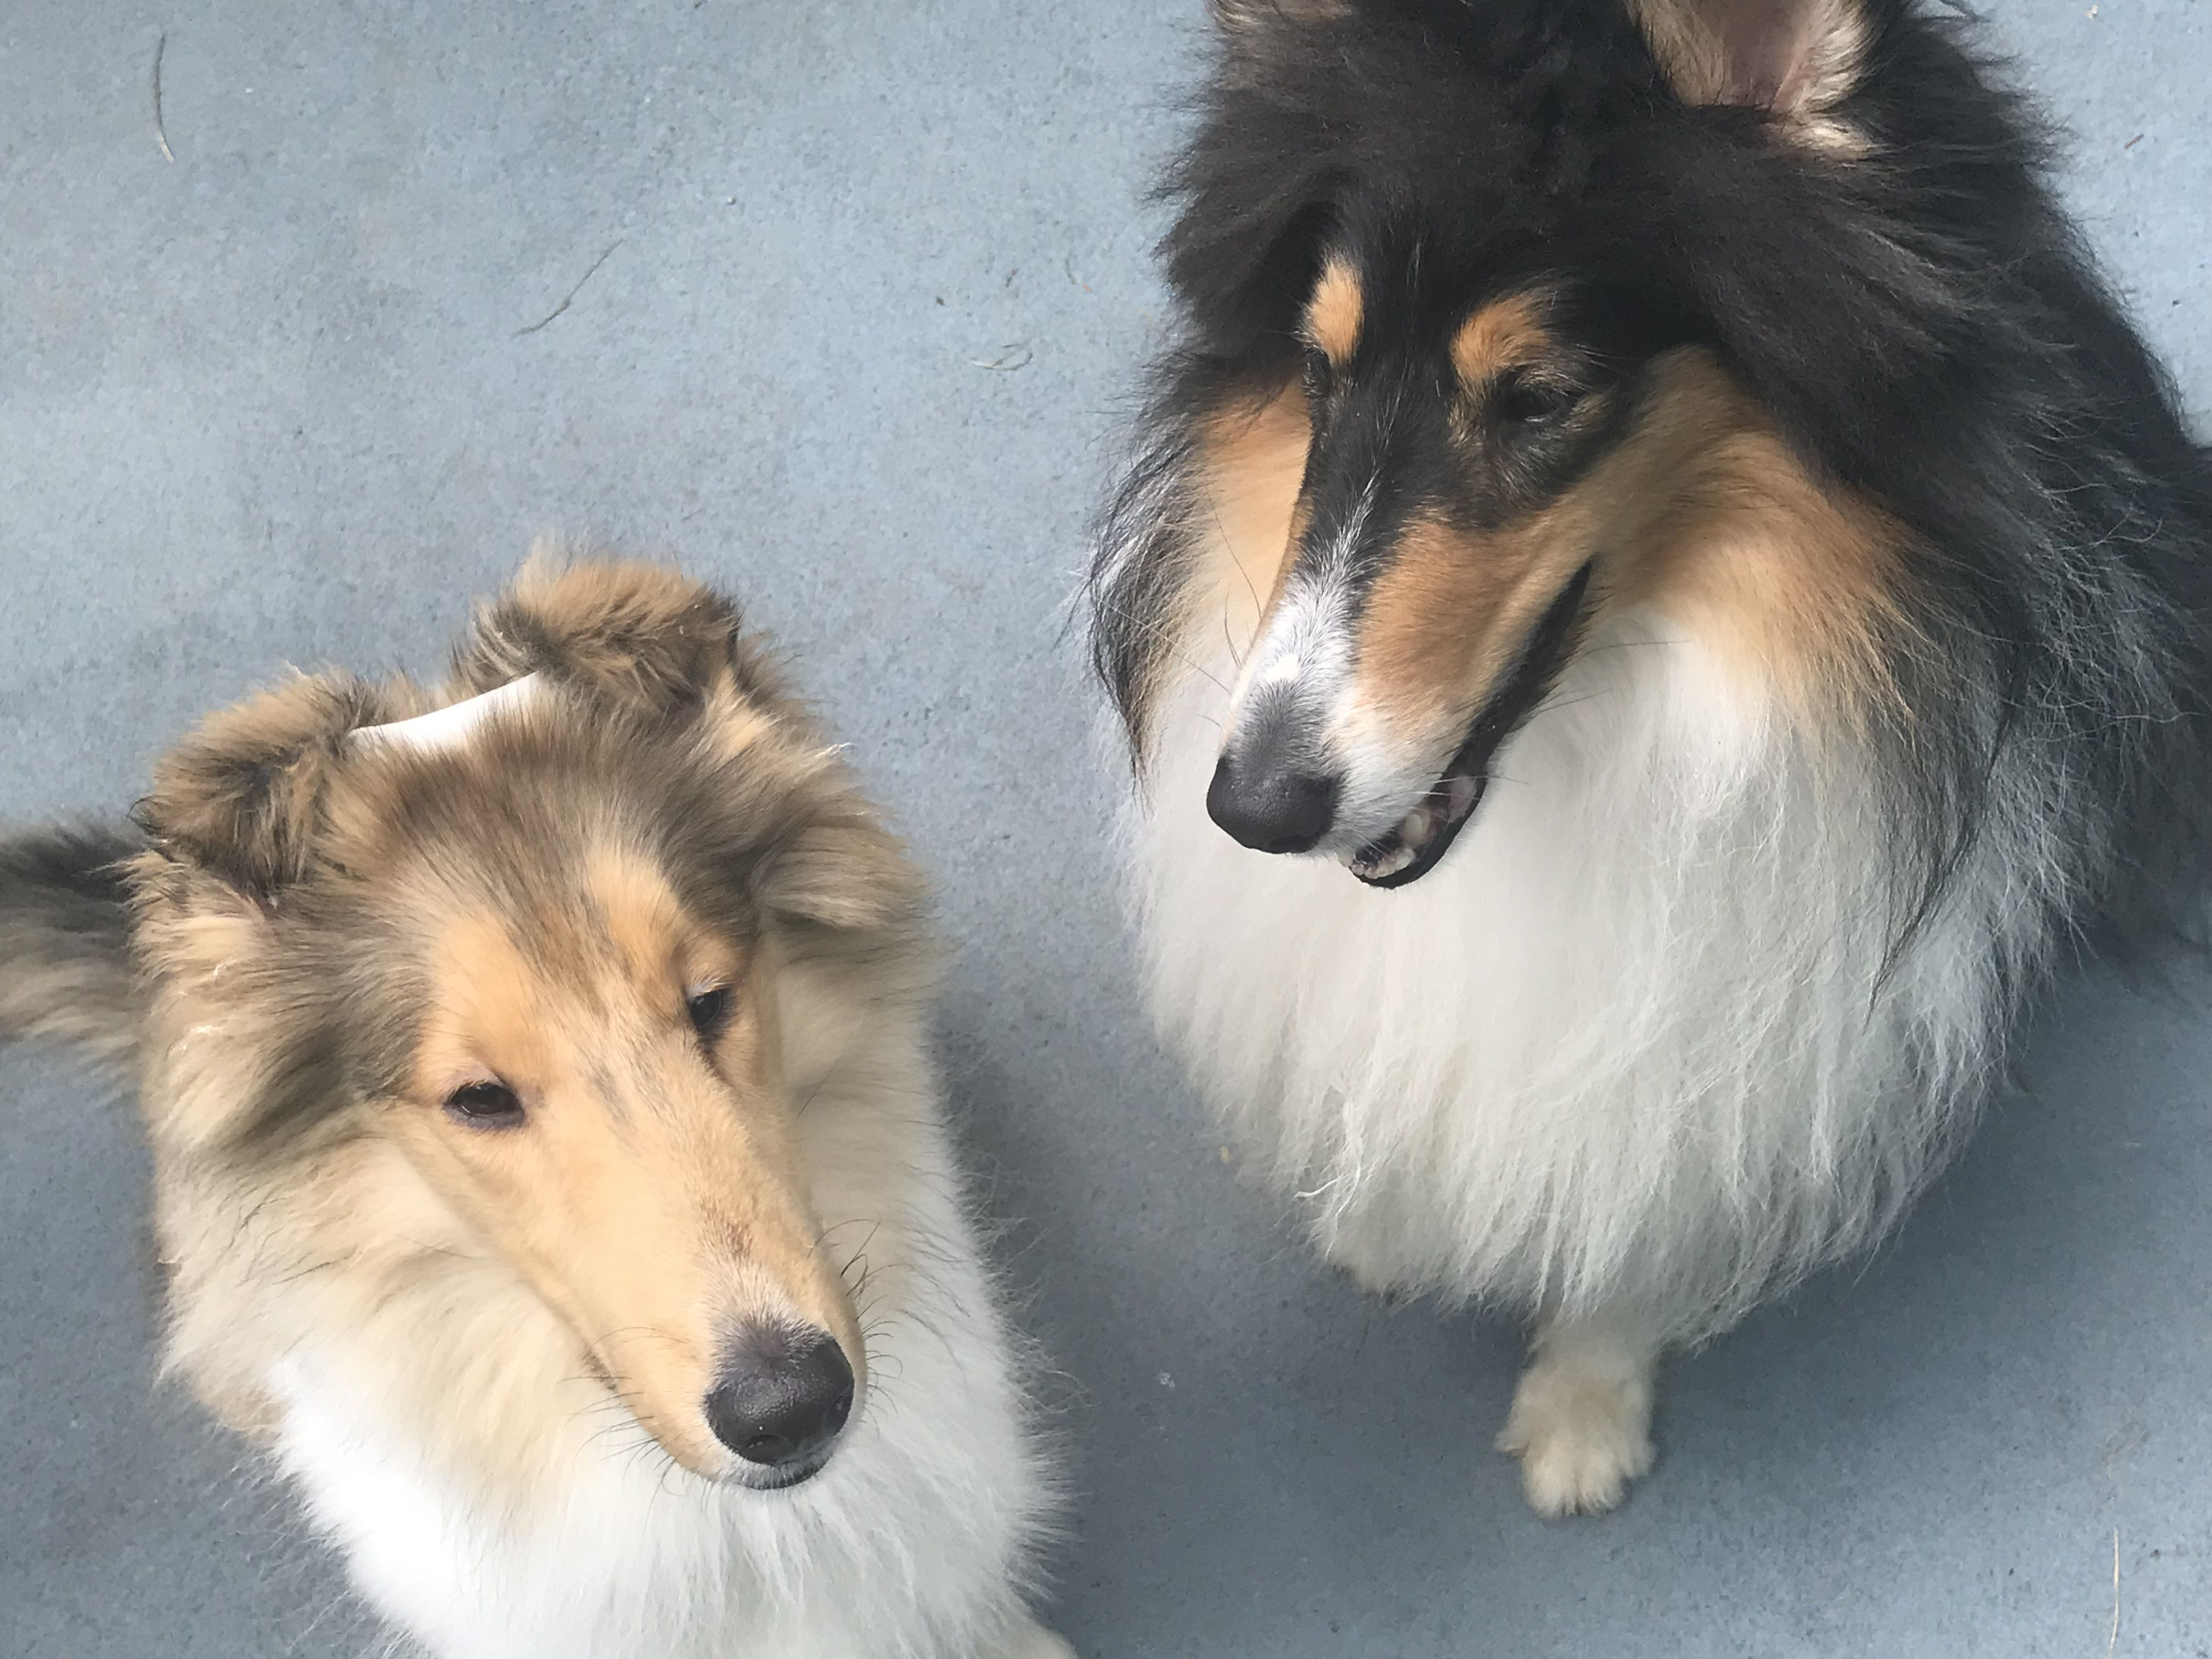 Shuri Is On The Left Morgan Is On The Right Rough Collie